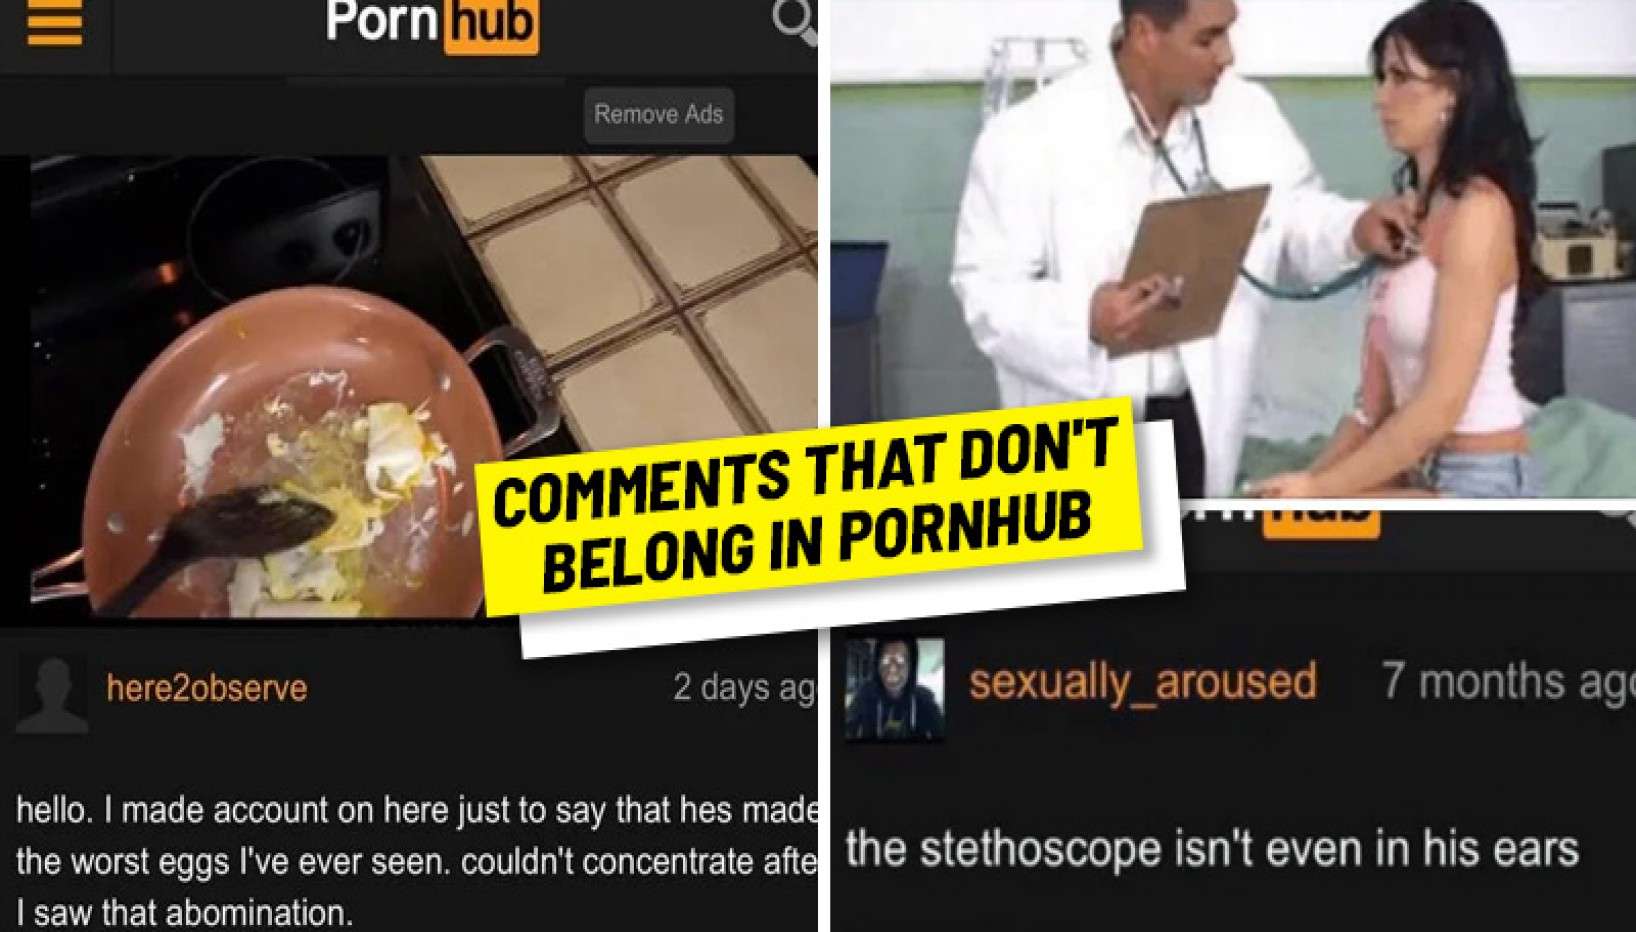 13 Hilarious Comments Spotted On Adult Video Sites That Just Don't Belong